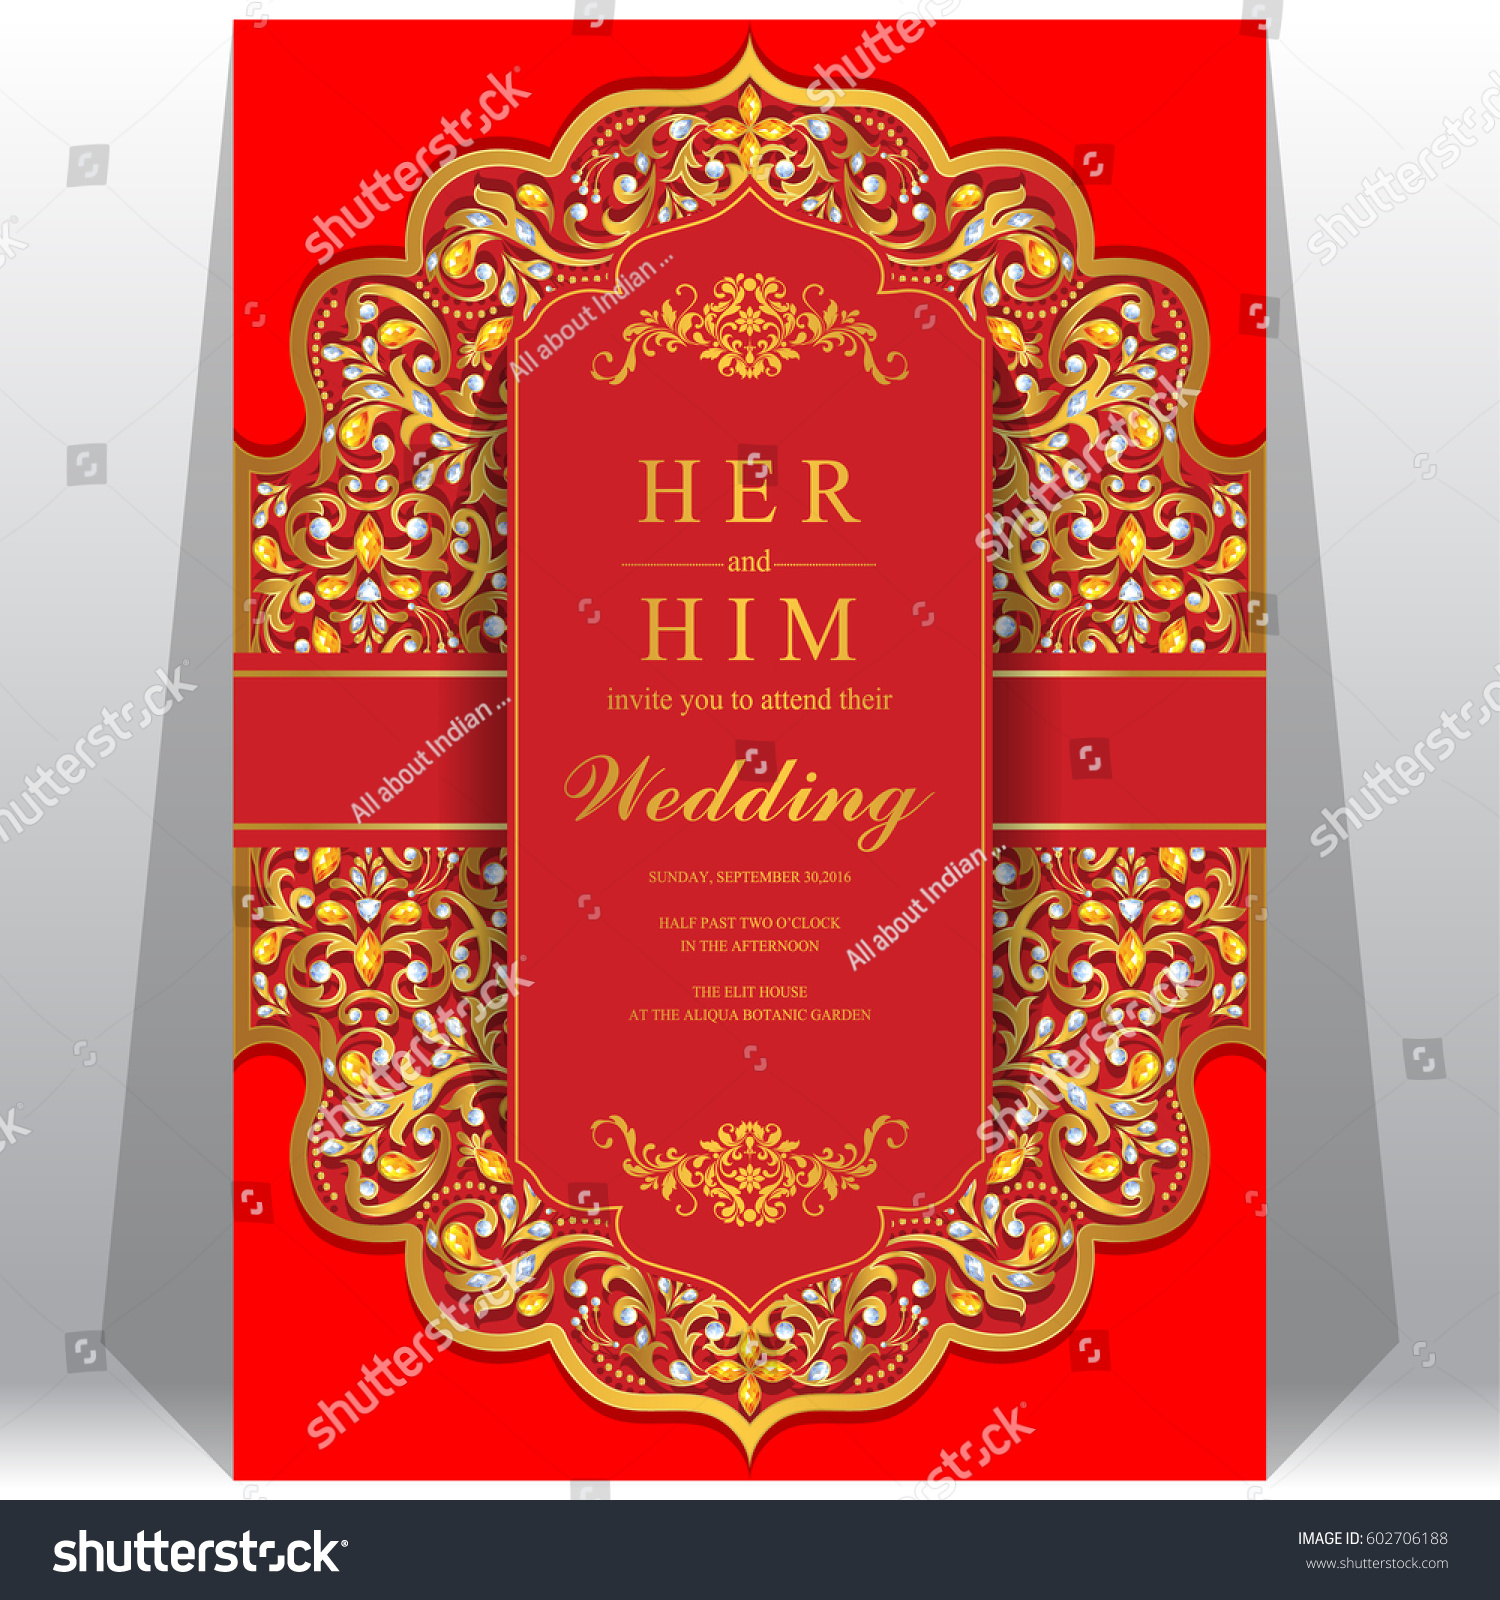 Wedding Invitation Card Templates Gold Patterned Stock Vector (2018 ...